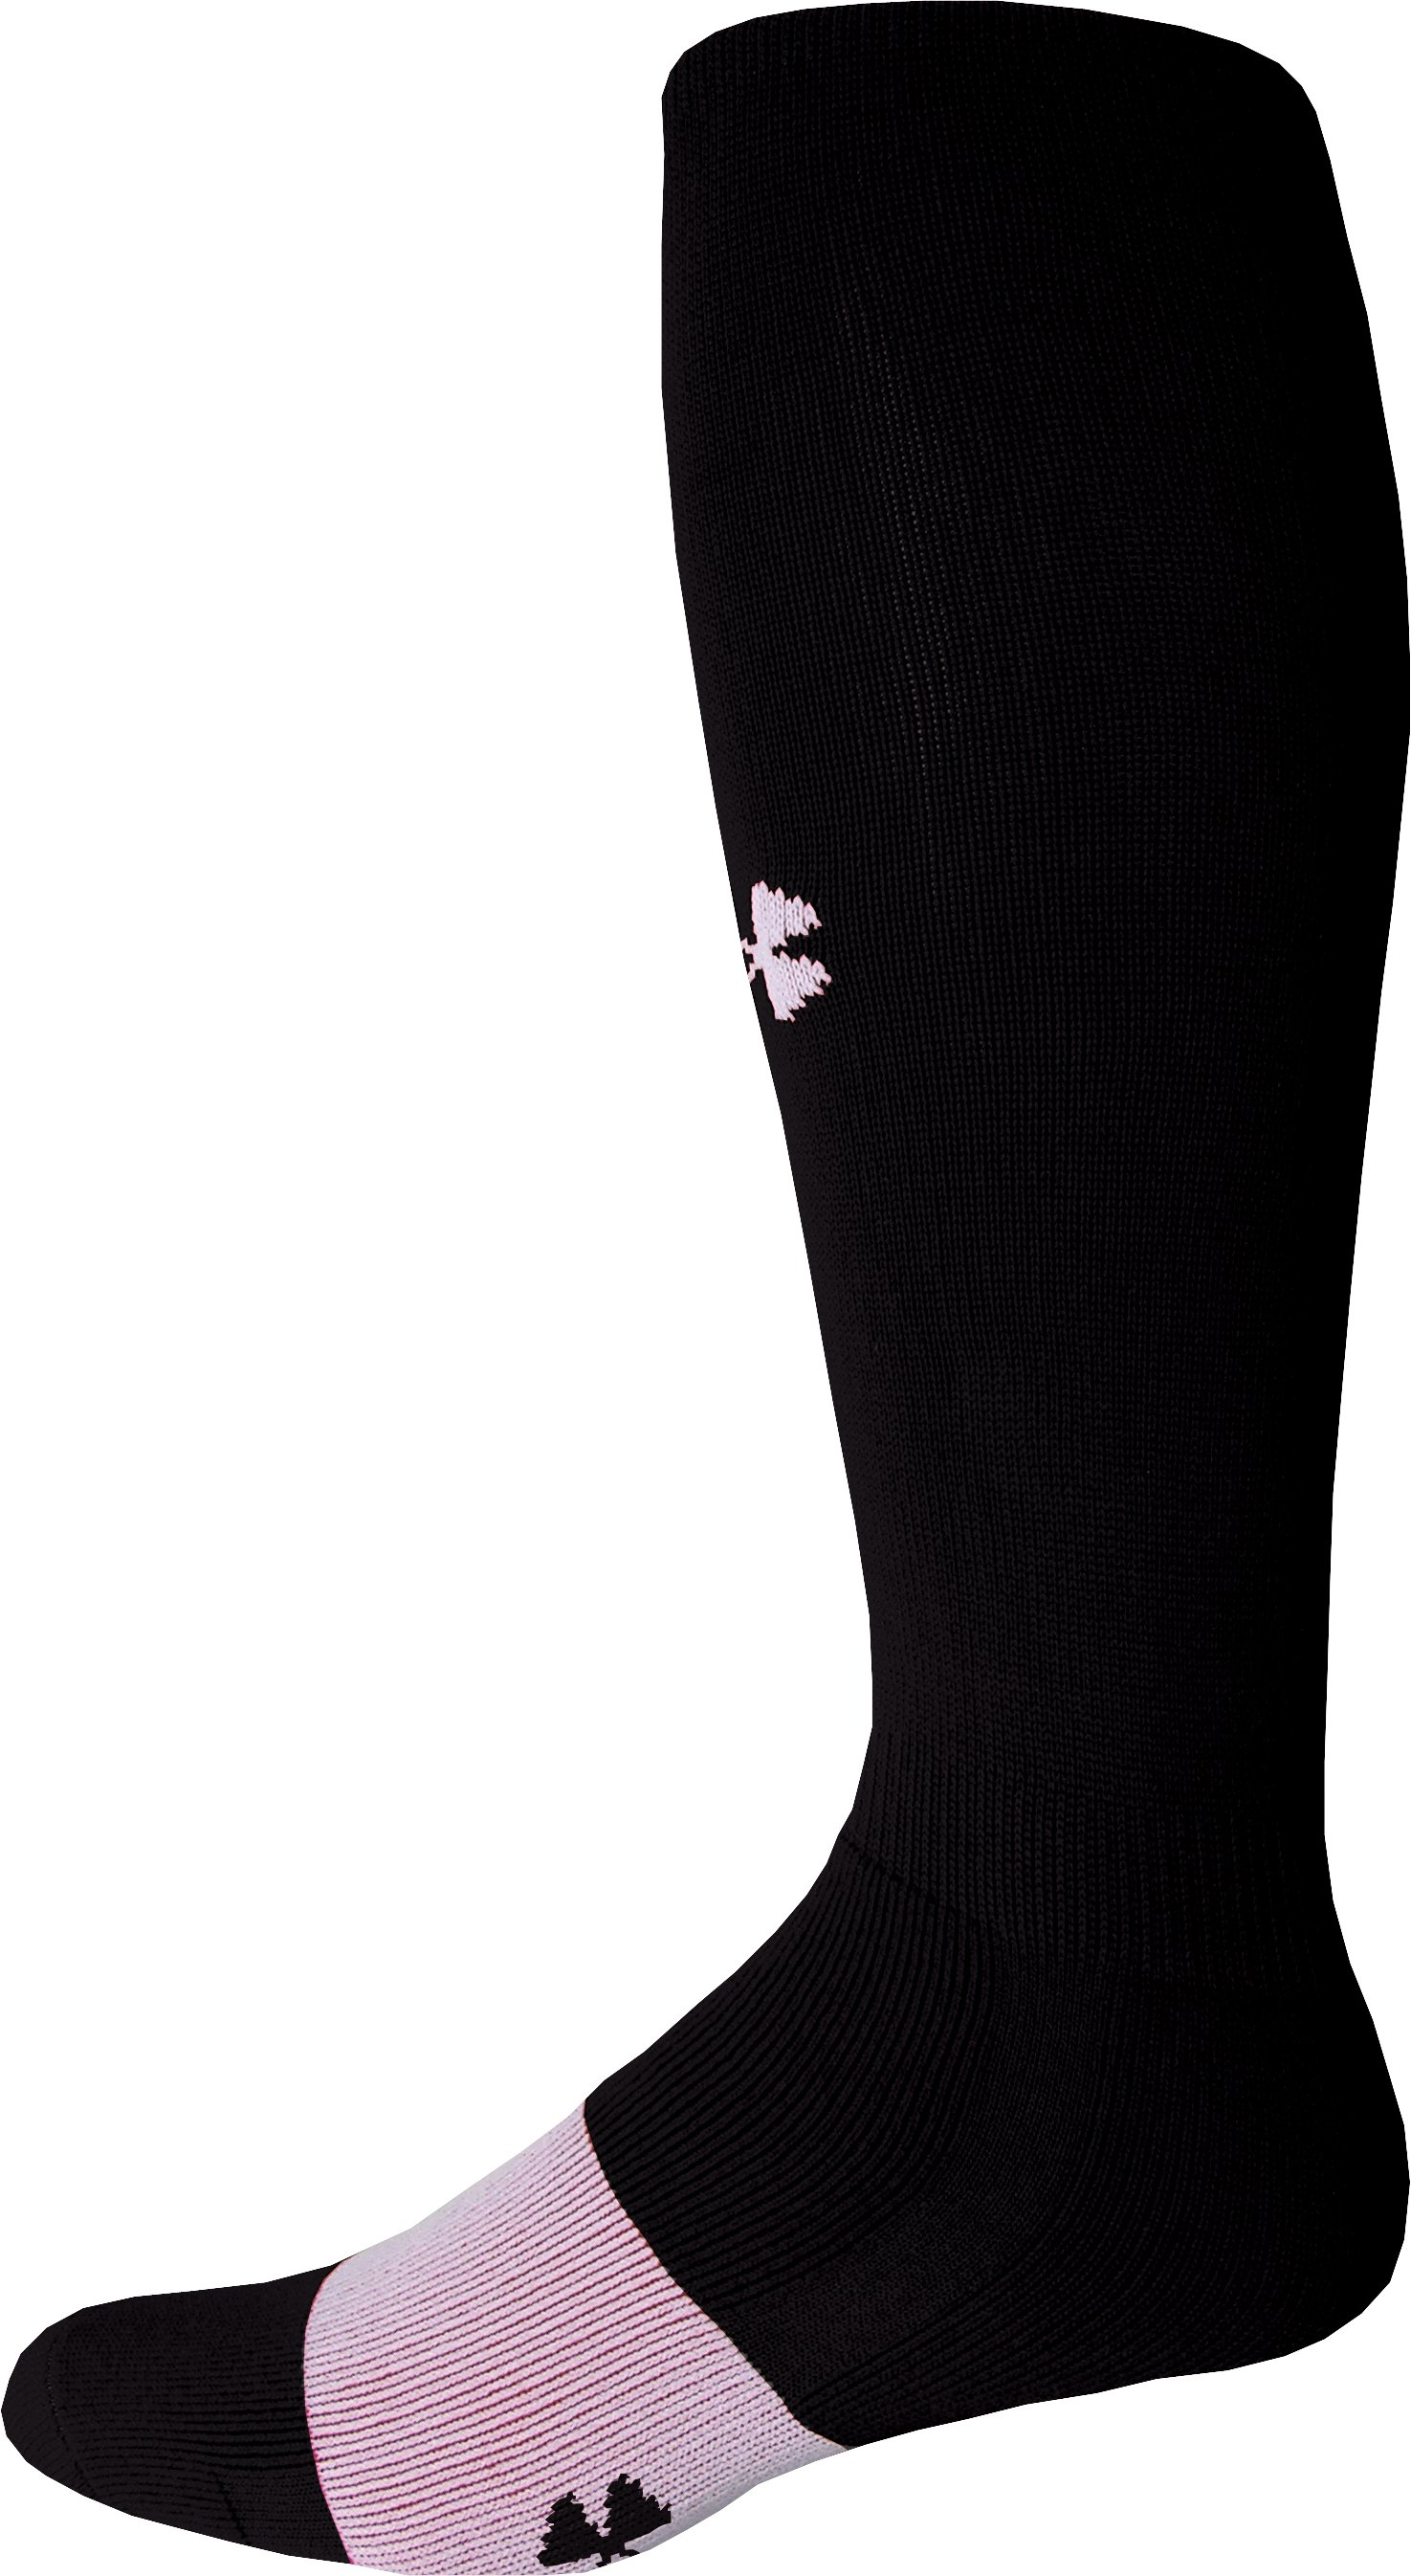 Men's Allsport Sock, Black , zoomed image